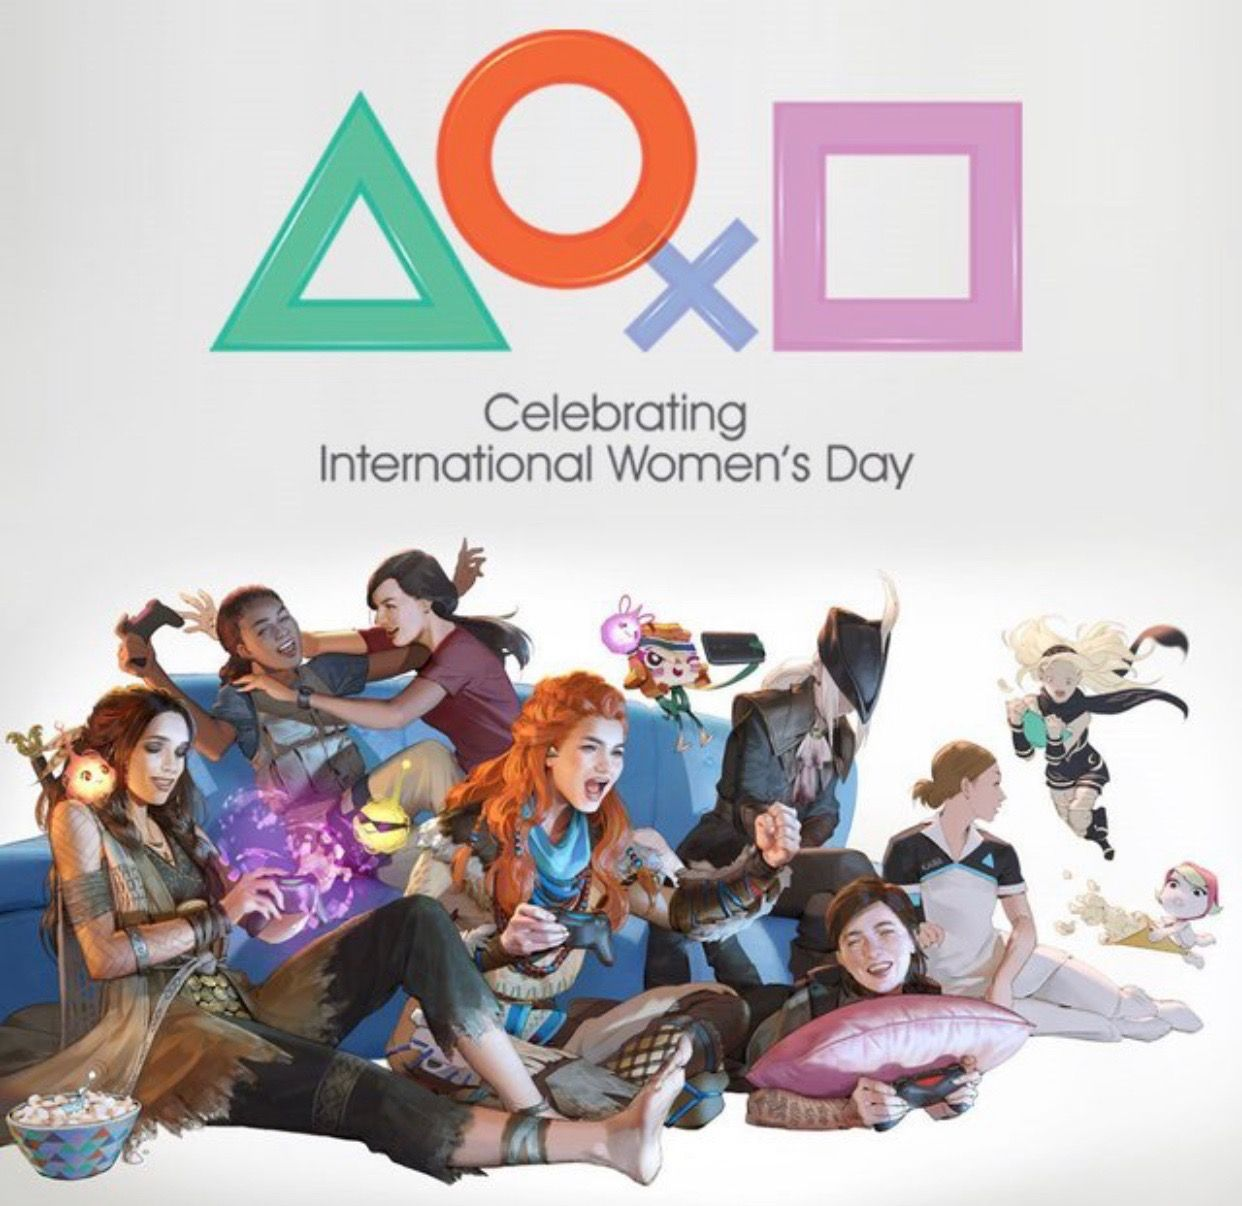 Pin by Logan on Games International womens day, Ladies